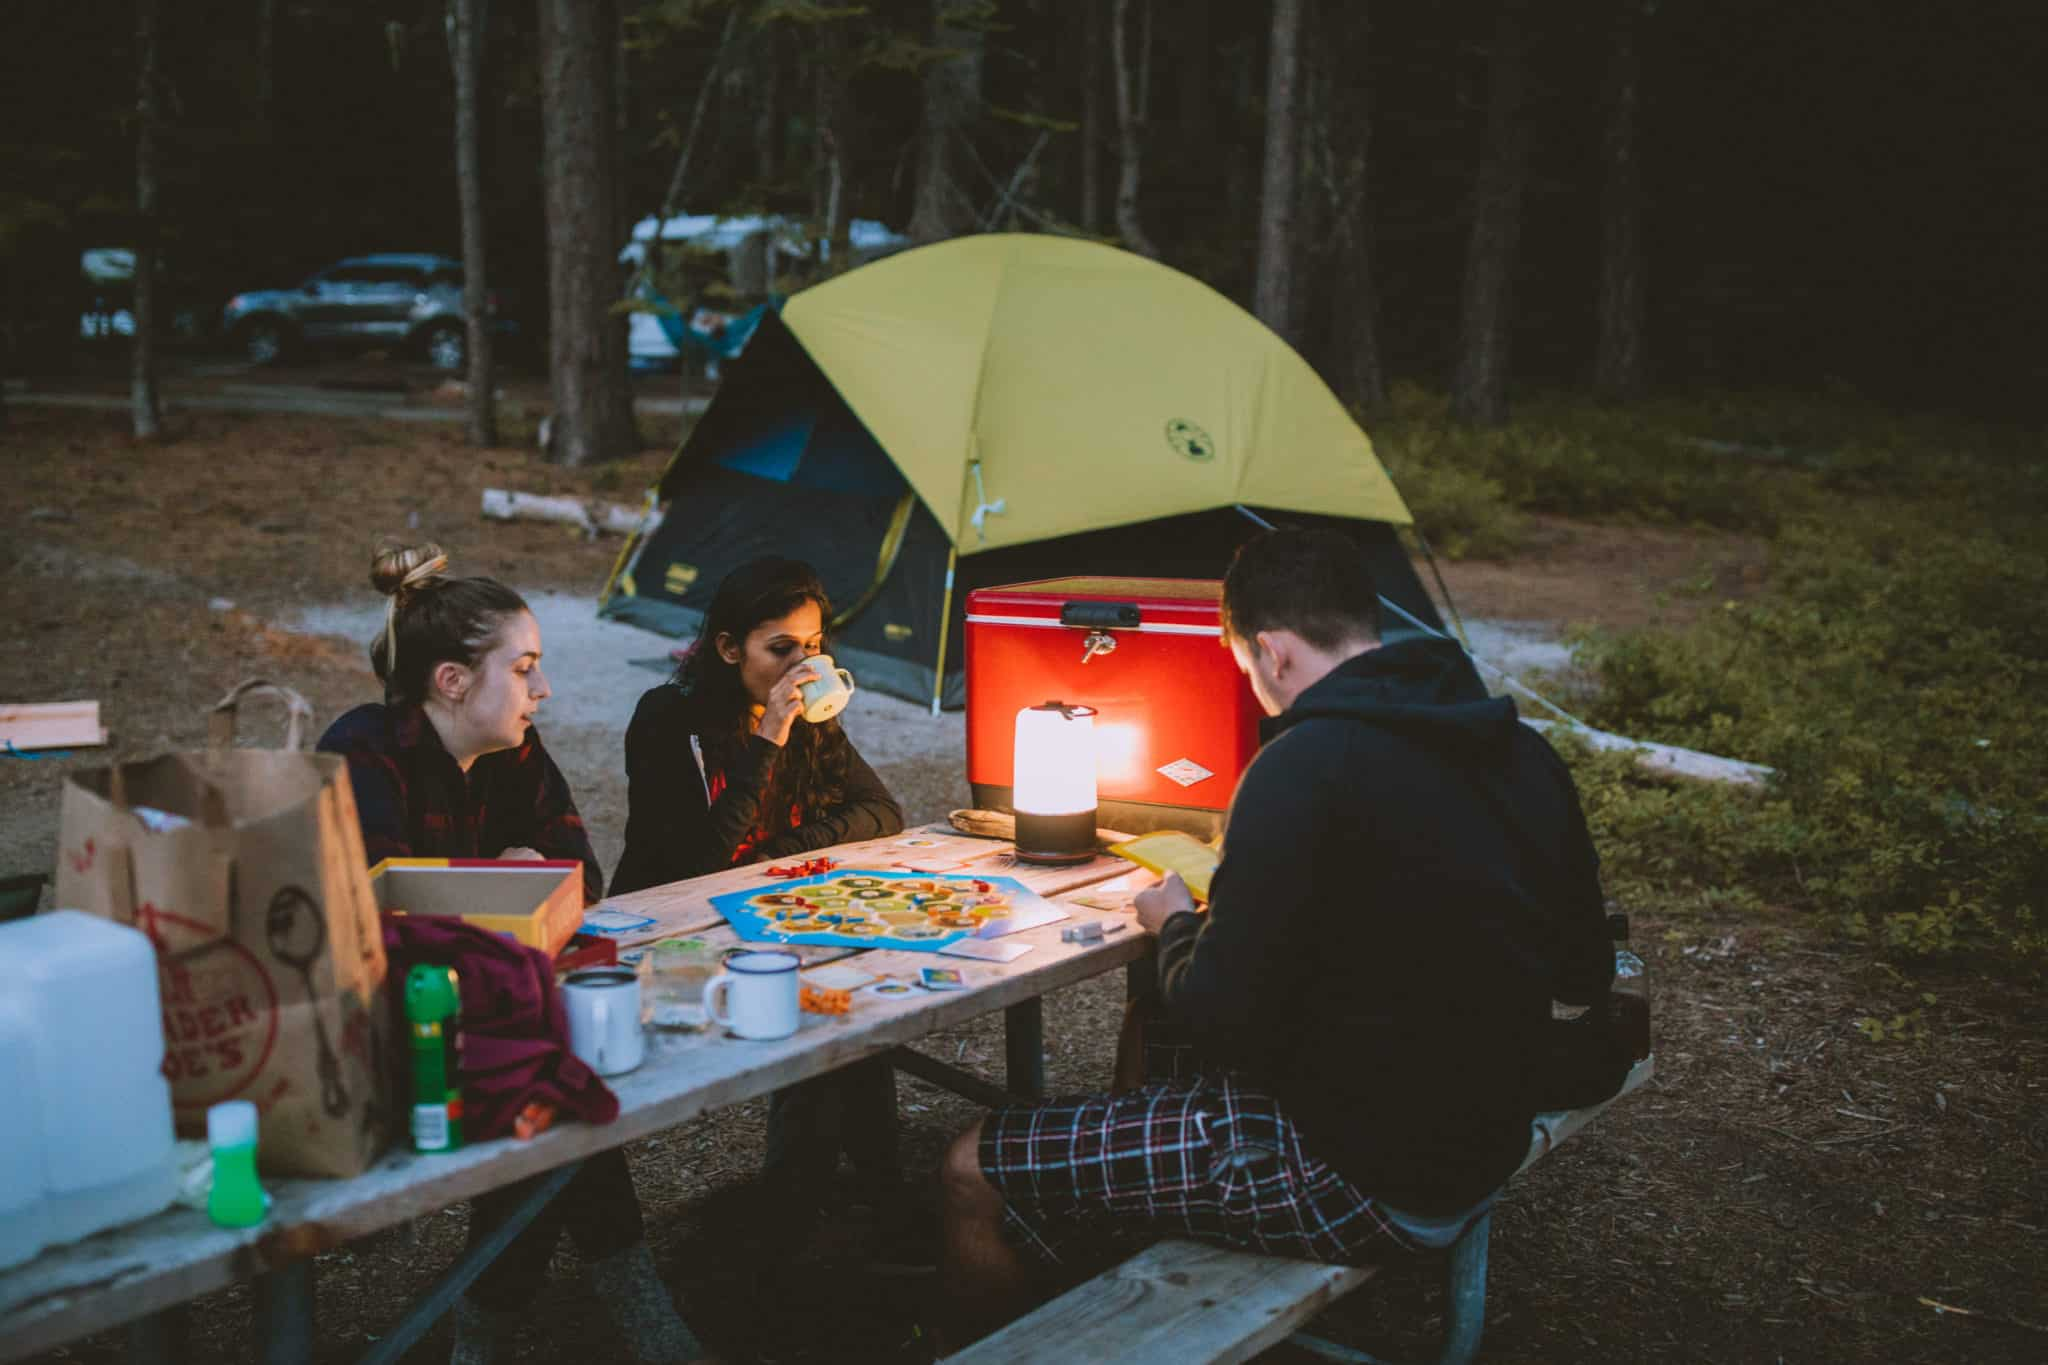 Camping Checklist - Games